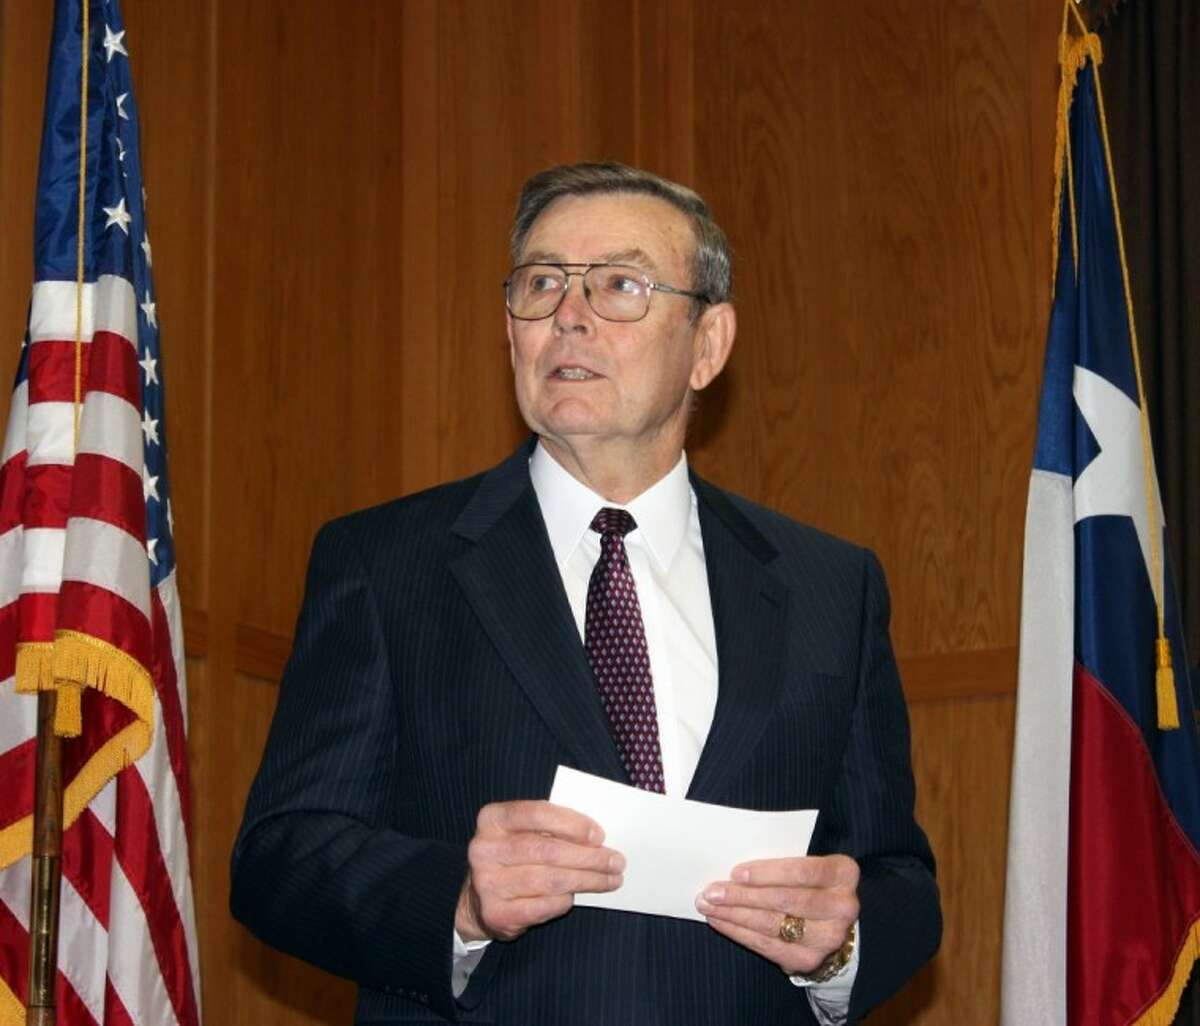 Retiring Waller County Judge Owen Ralston makes some departing remarks Saturday during the swearing in ceremony for the recently elected county officials. Ralston has been in government service for 49 years, the last eight as county judge.